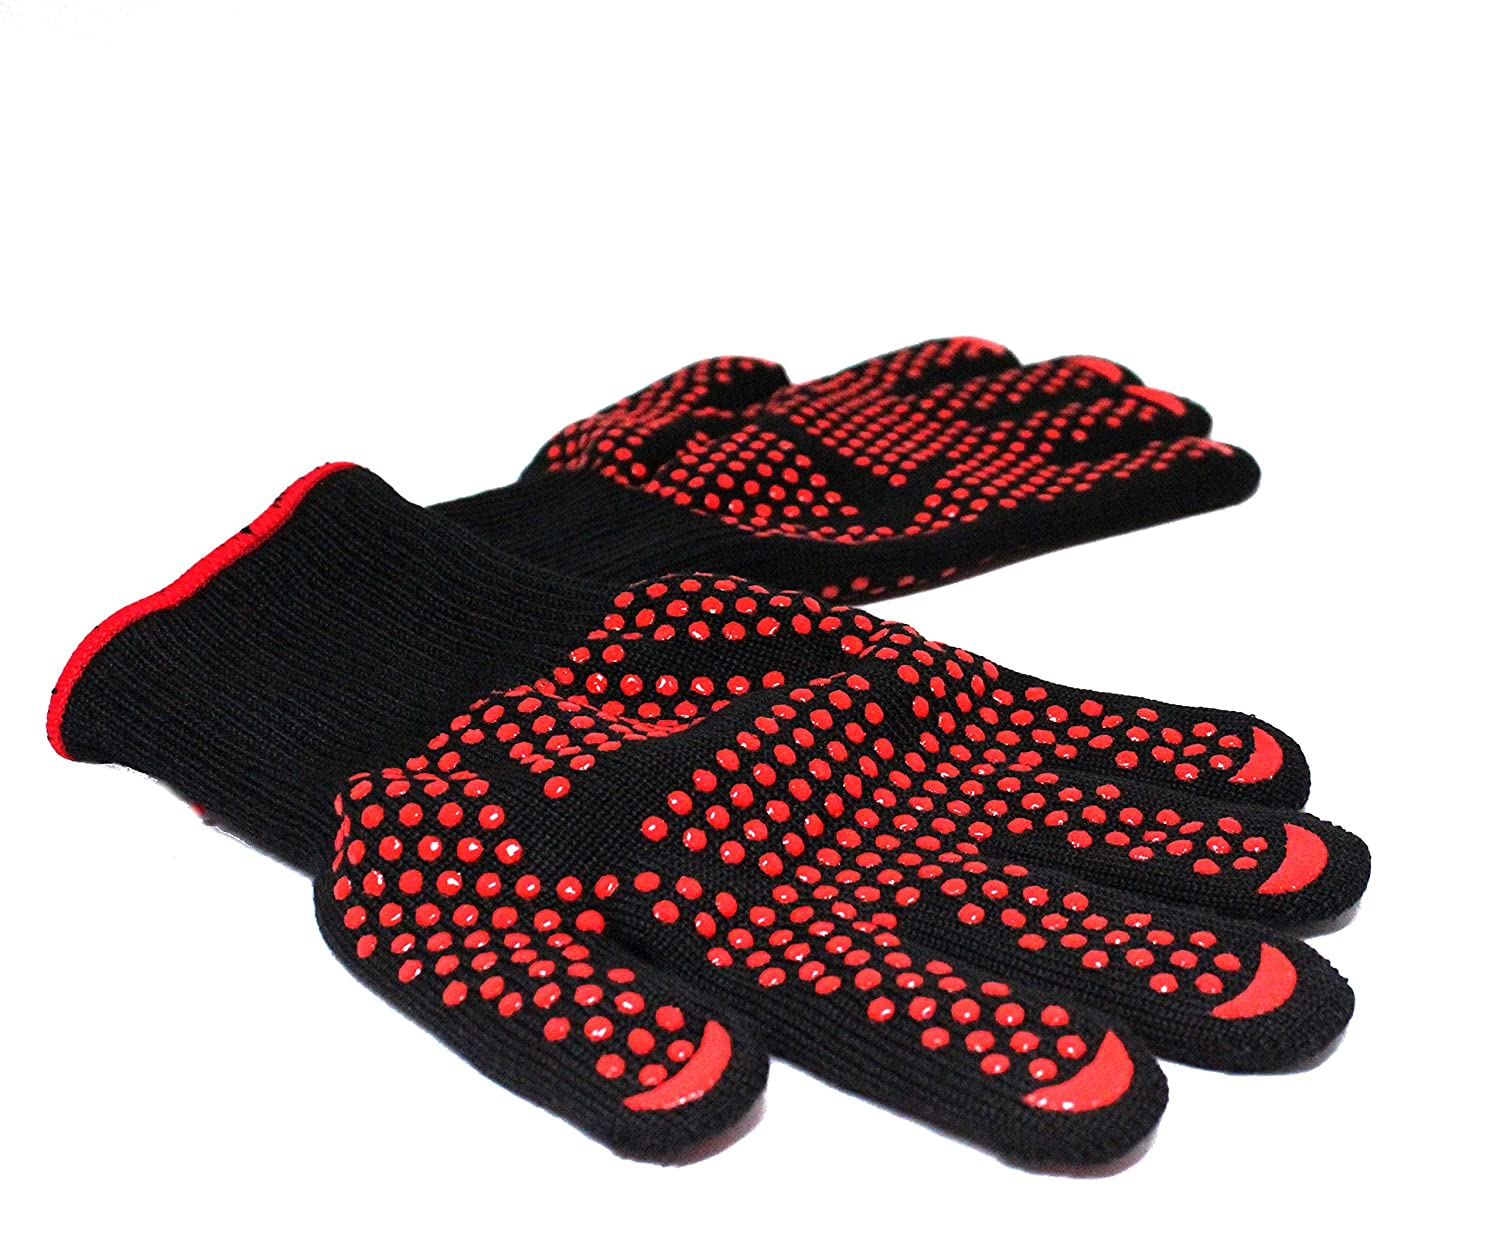 Royal Brands Grilling Gloves Heat Resistant Gloves BBQ Kitchen Oven Mitts Non-Slip Potholder for Barbecue Cooking Baking (Black w/Red Dots)